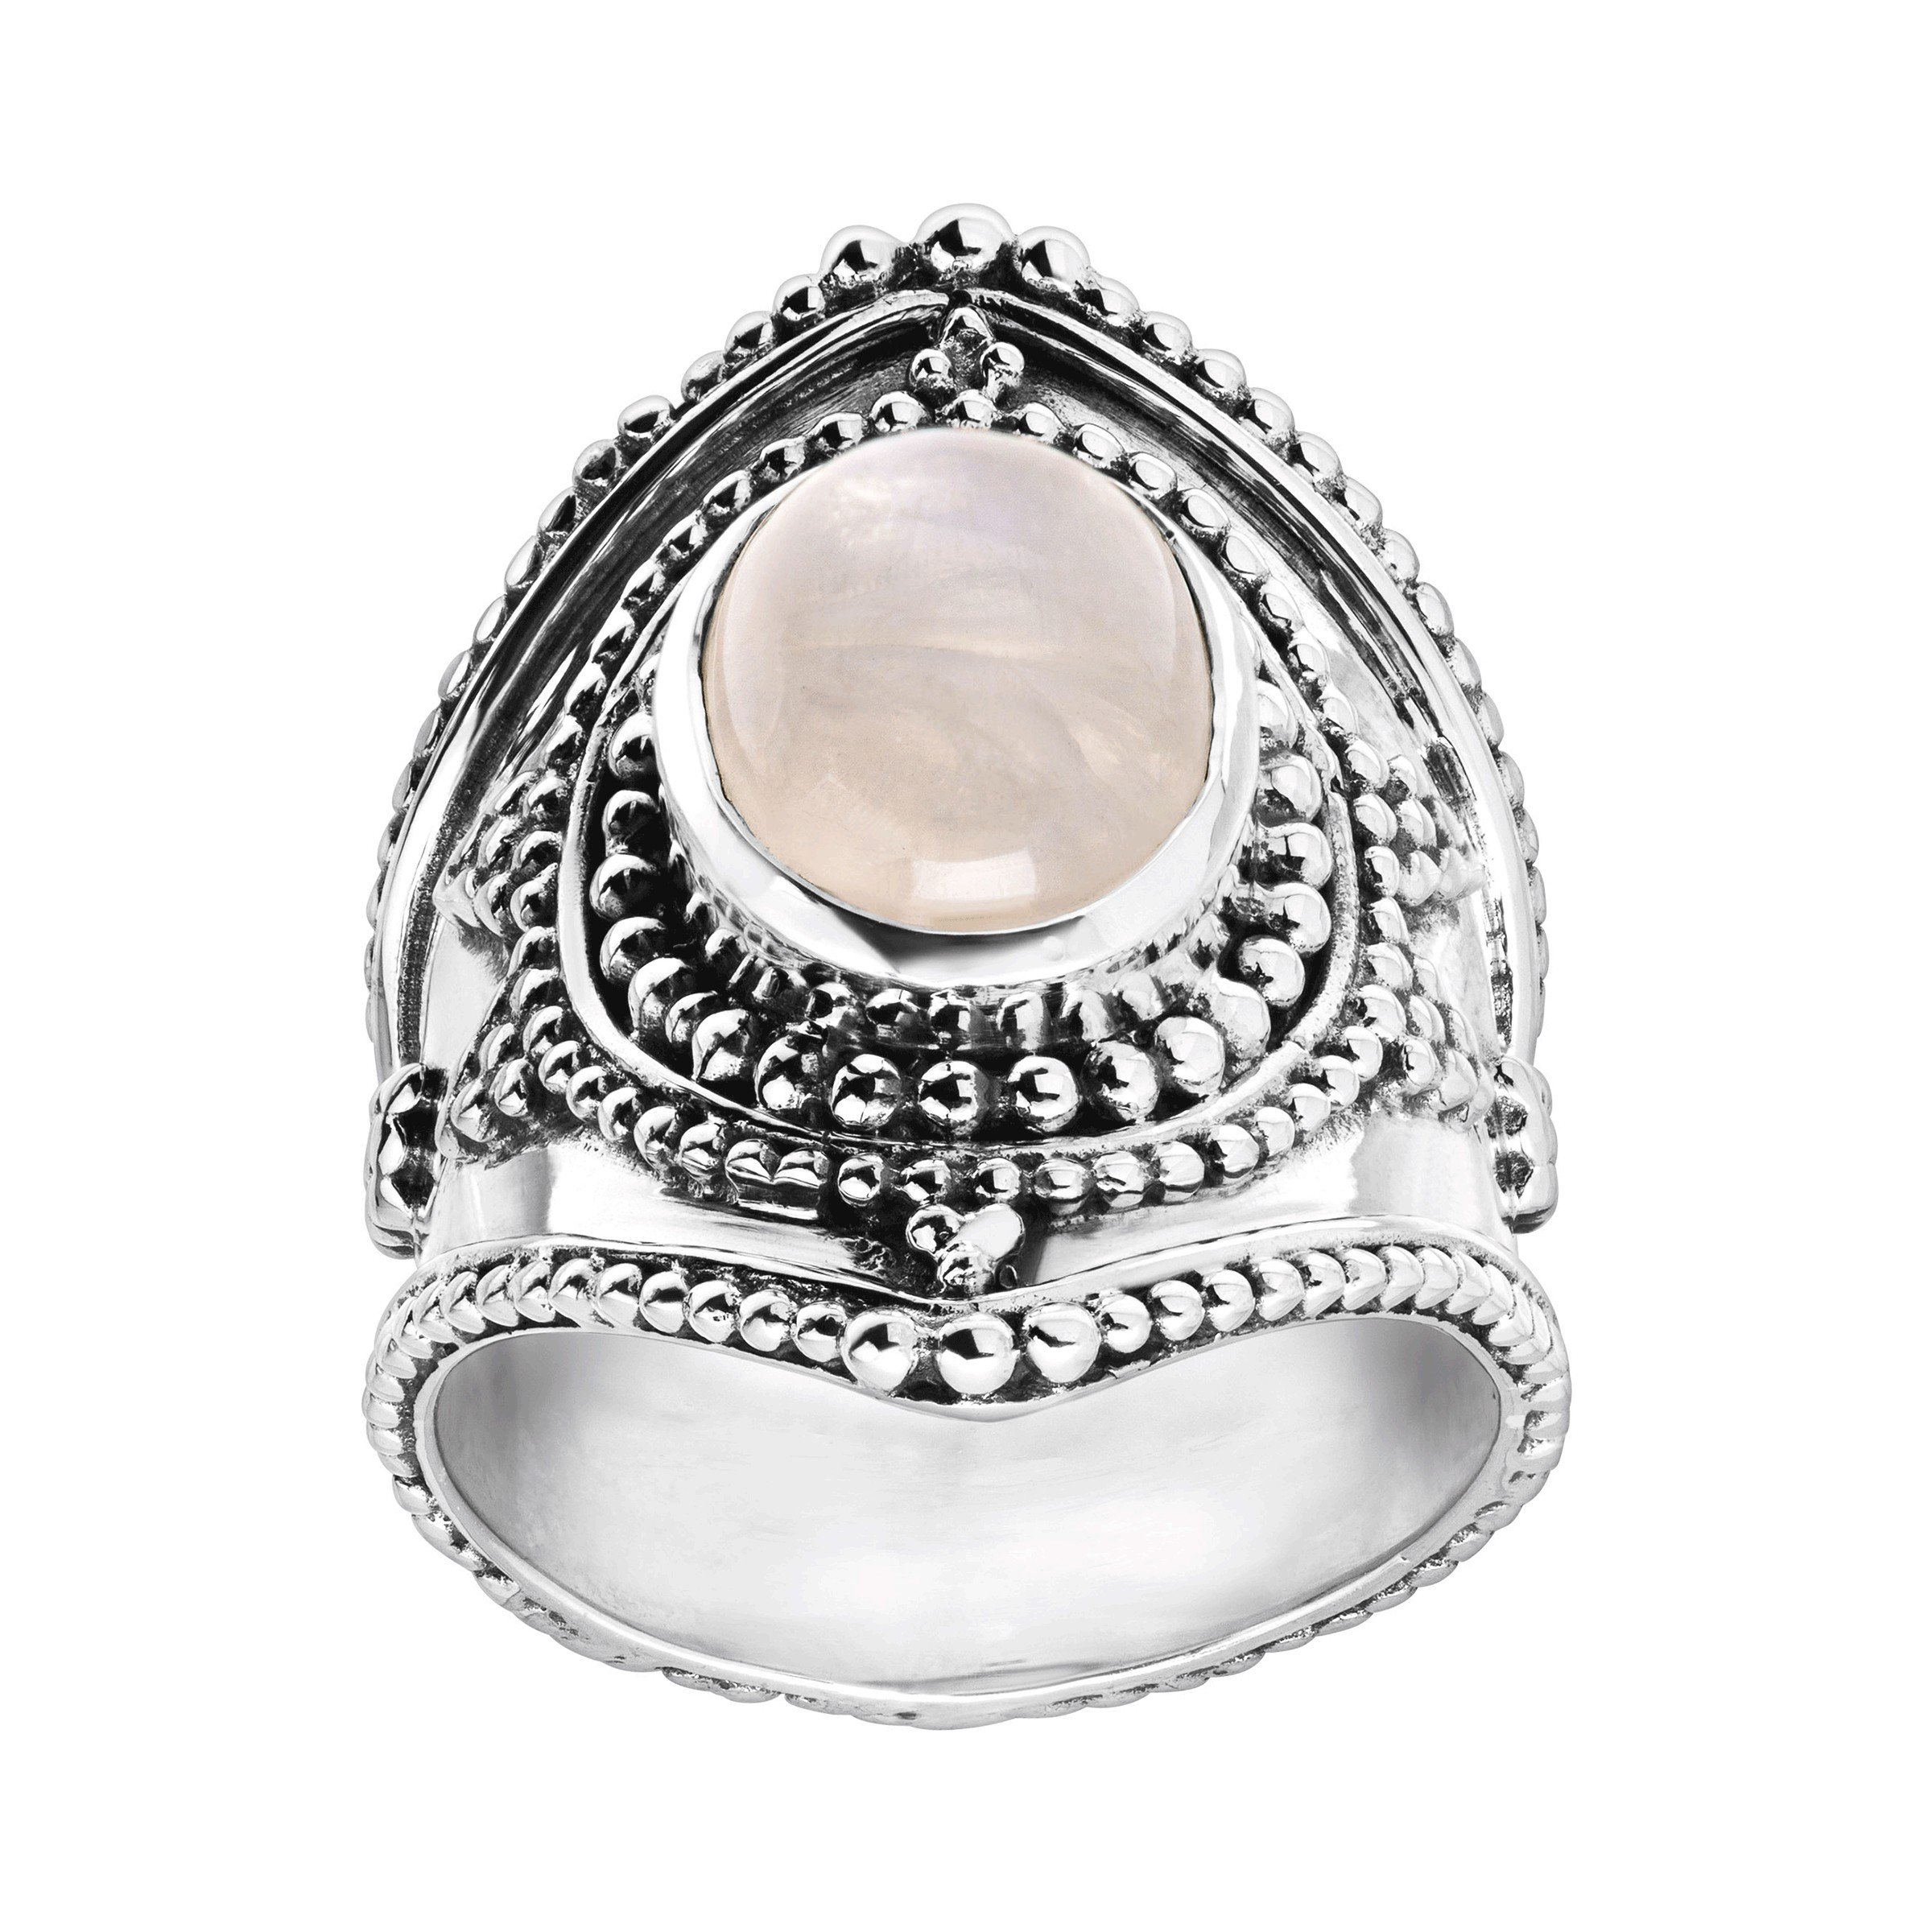 Silpada Moonglow Ring